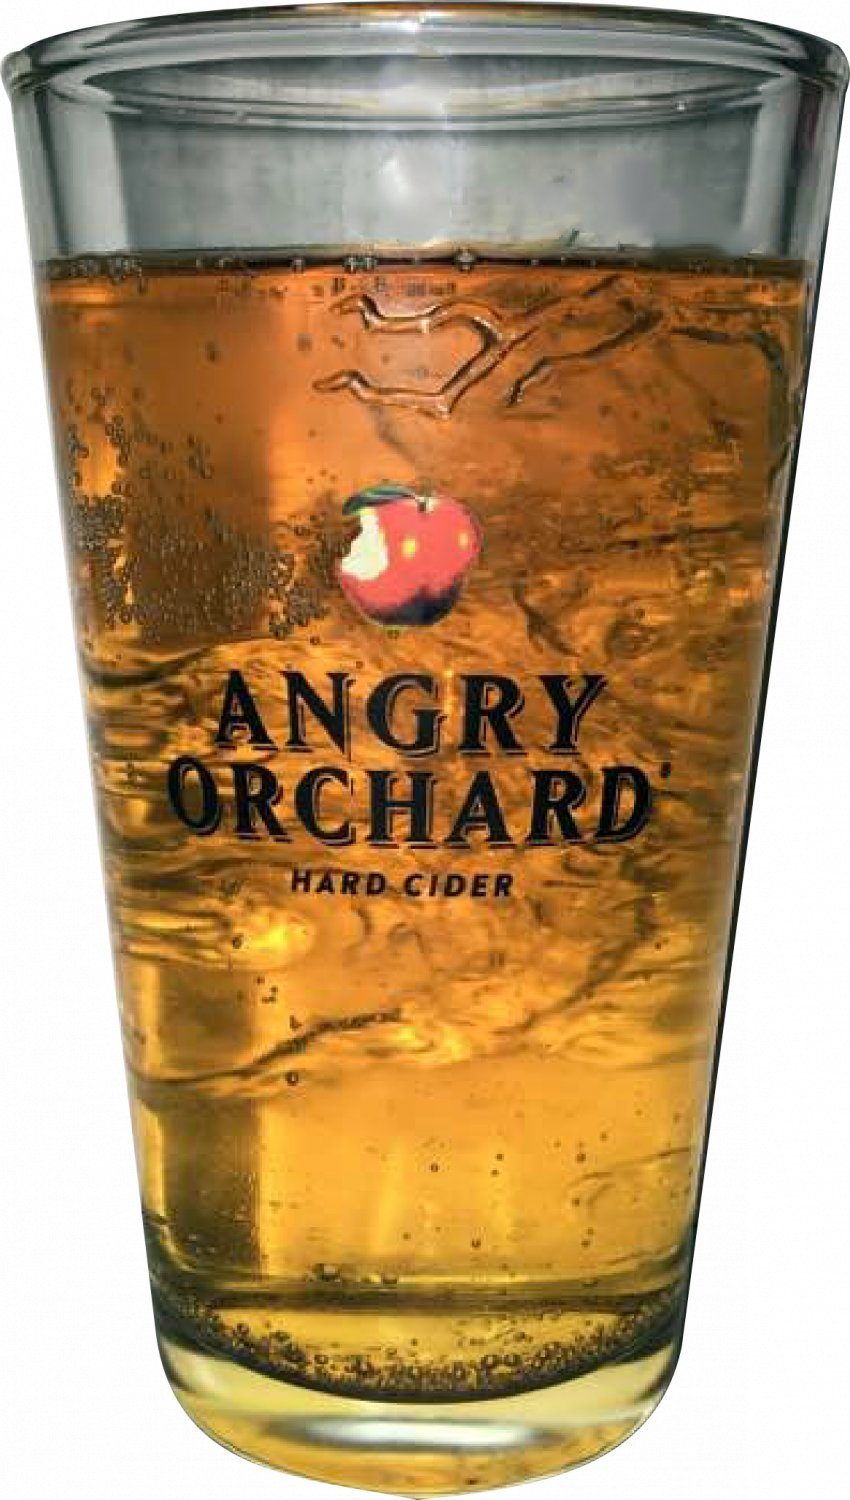 Angry Orchard Hard Cider Drink Glass - 3D Embossed Glass